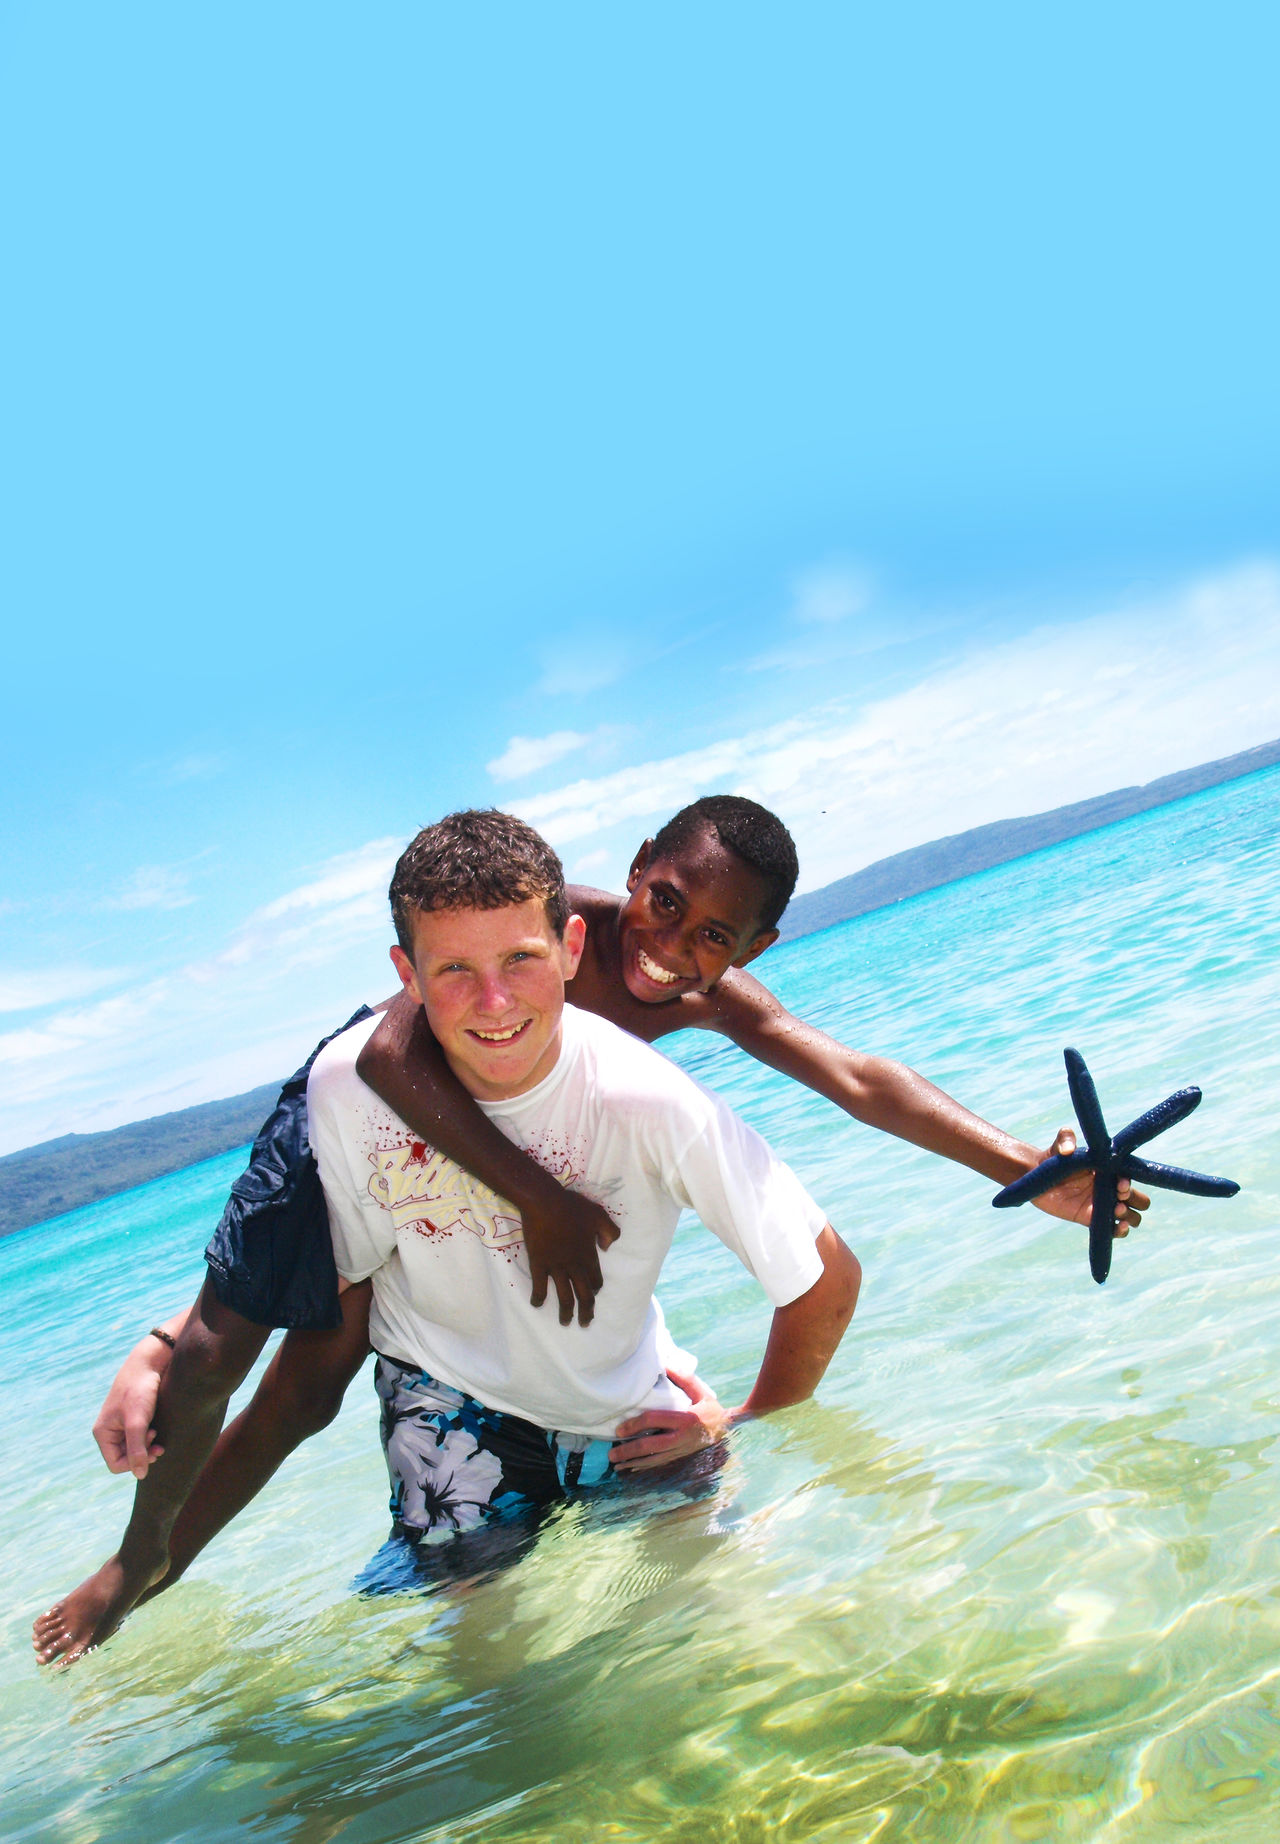 The Blue Star Fish Port Vila Vanuatu Beach Fun Beach Life Blue Blue Starfish Bonding Casual Clothing Childhood Cloud - Sky Day Enjoyment Family Friendship Fun Holding Innocence Leisure Activity Lifestyles Non-urban Scene Sea Sibling Sky Togetherness Vacations Vanuatu Water